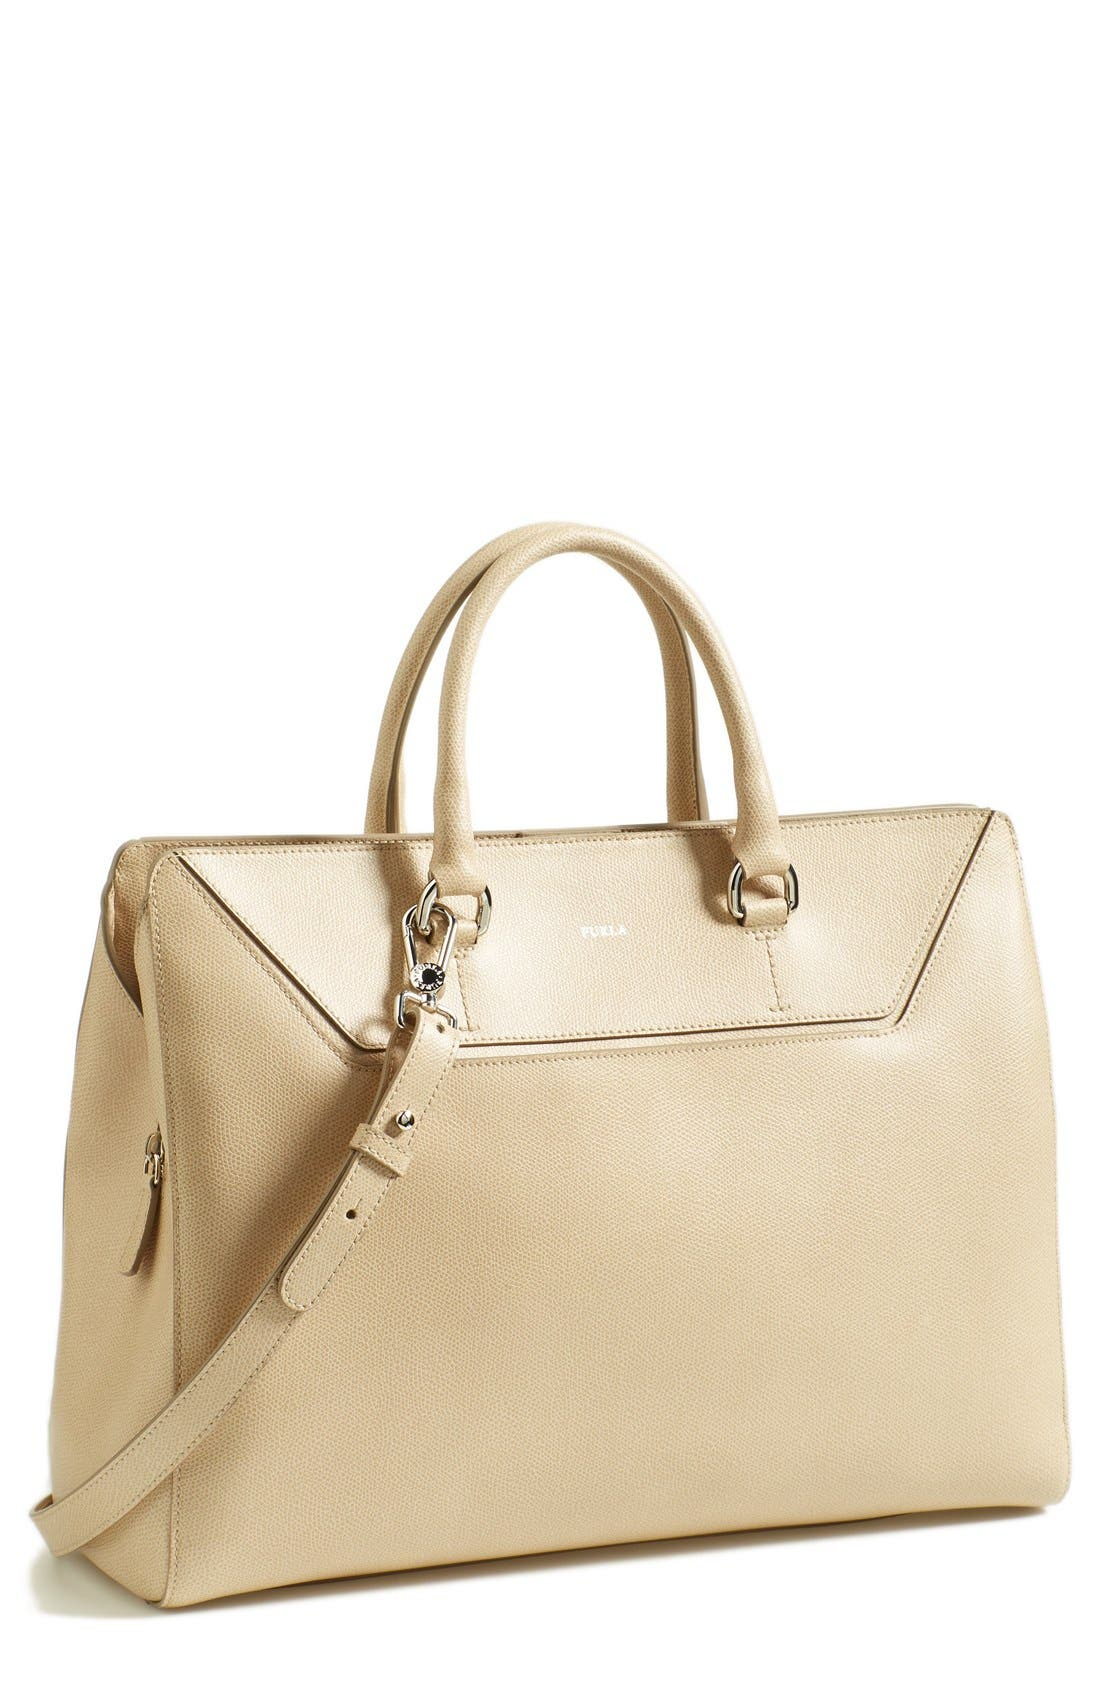 Alternate Image 1 Selected - Furla 'B & T' Tote